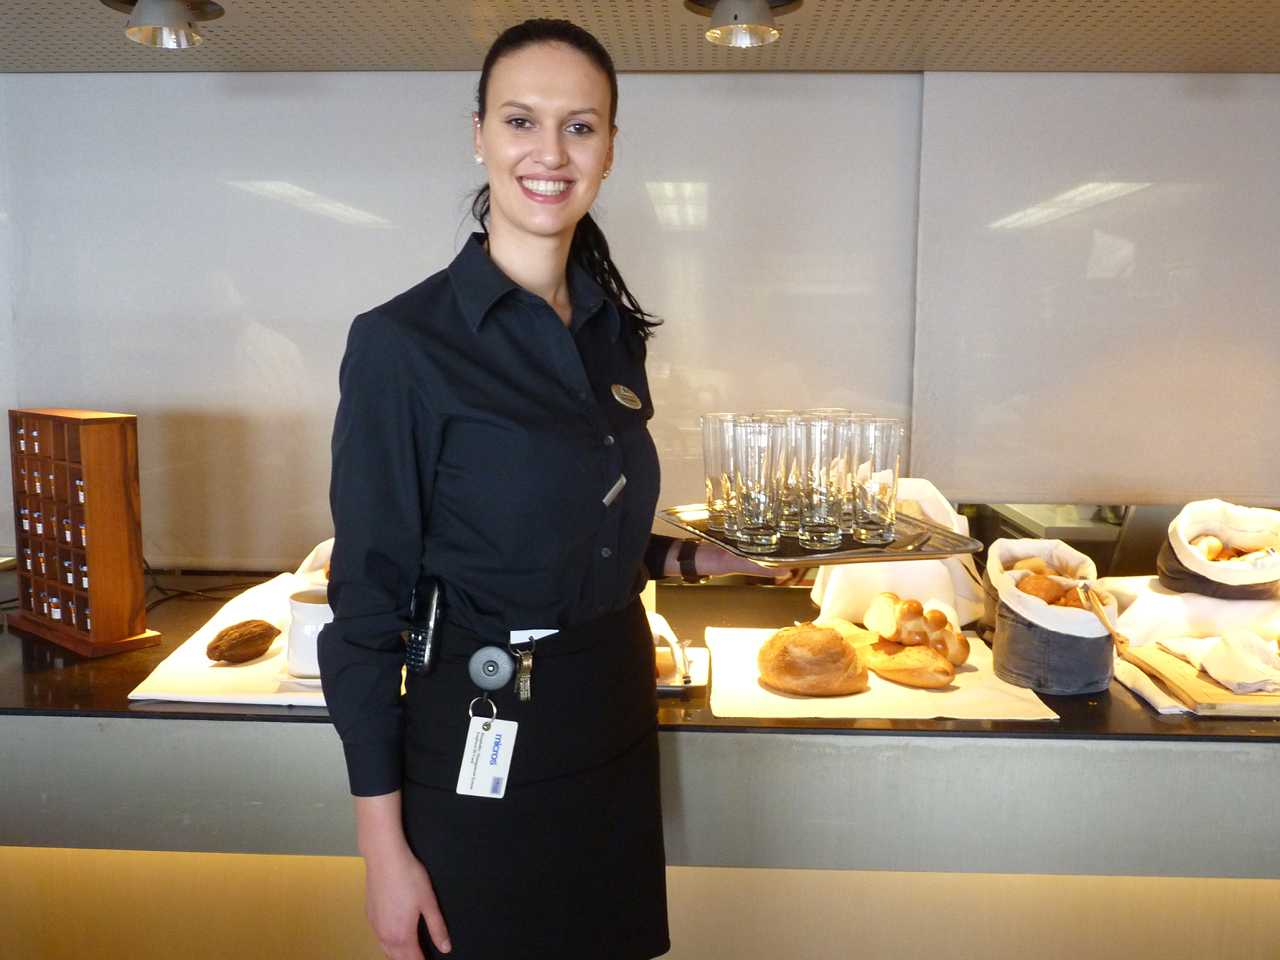 Superior Why Did You Choose To Do Your Apprenticeship As A Catering Manager At ZFV?  I Heard About Hotel Zürichberg Through My Parents. I Did A Trial  Apprenticeship ... In Catering Manager